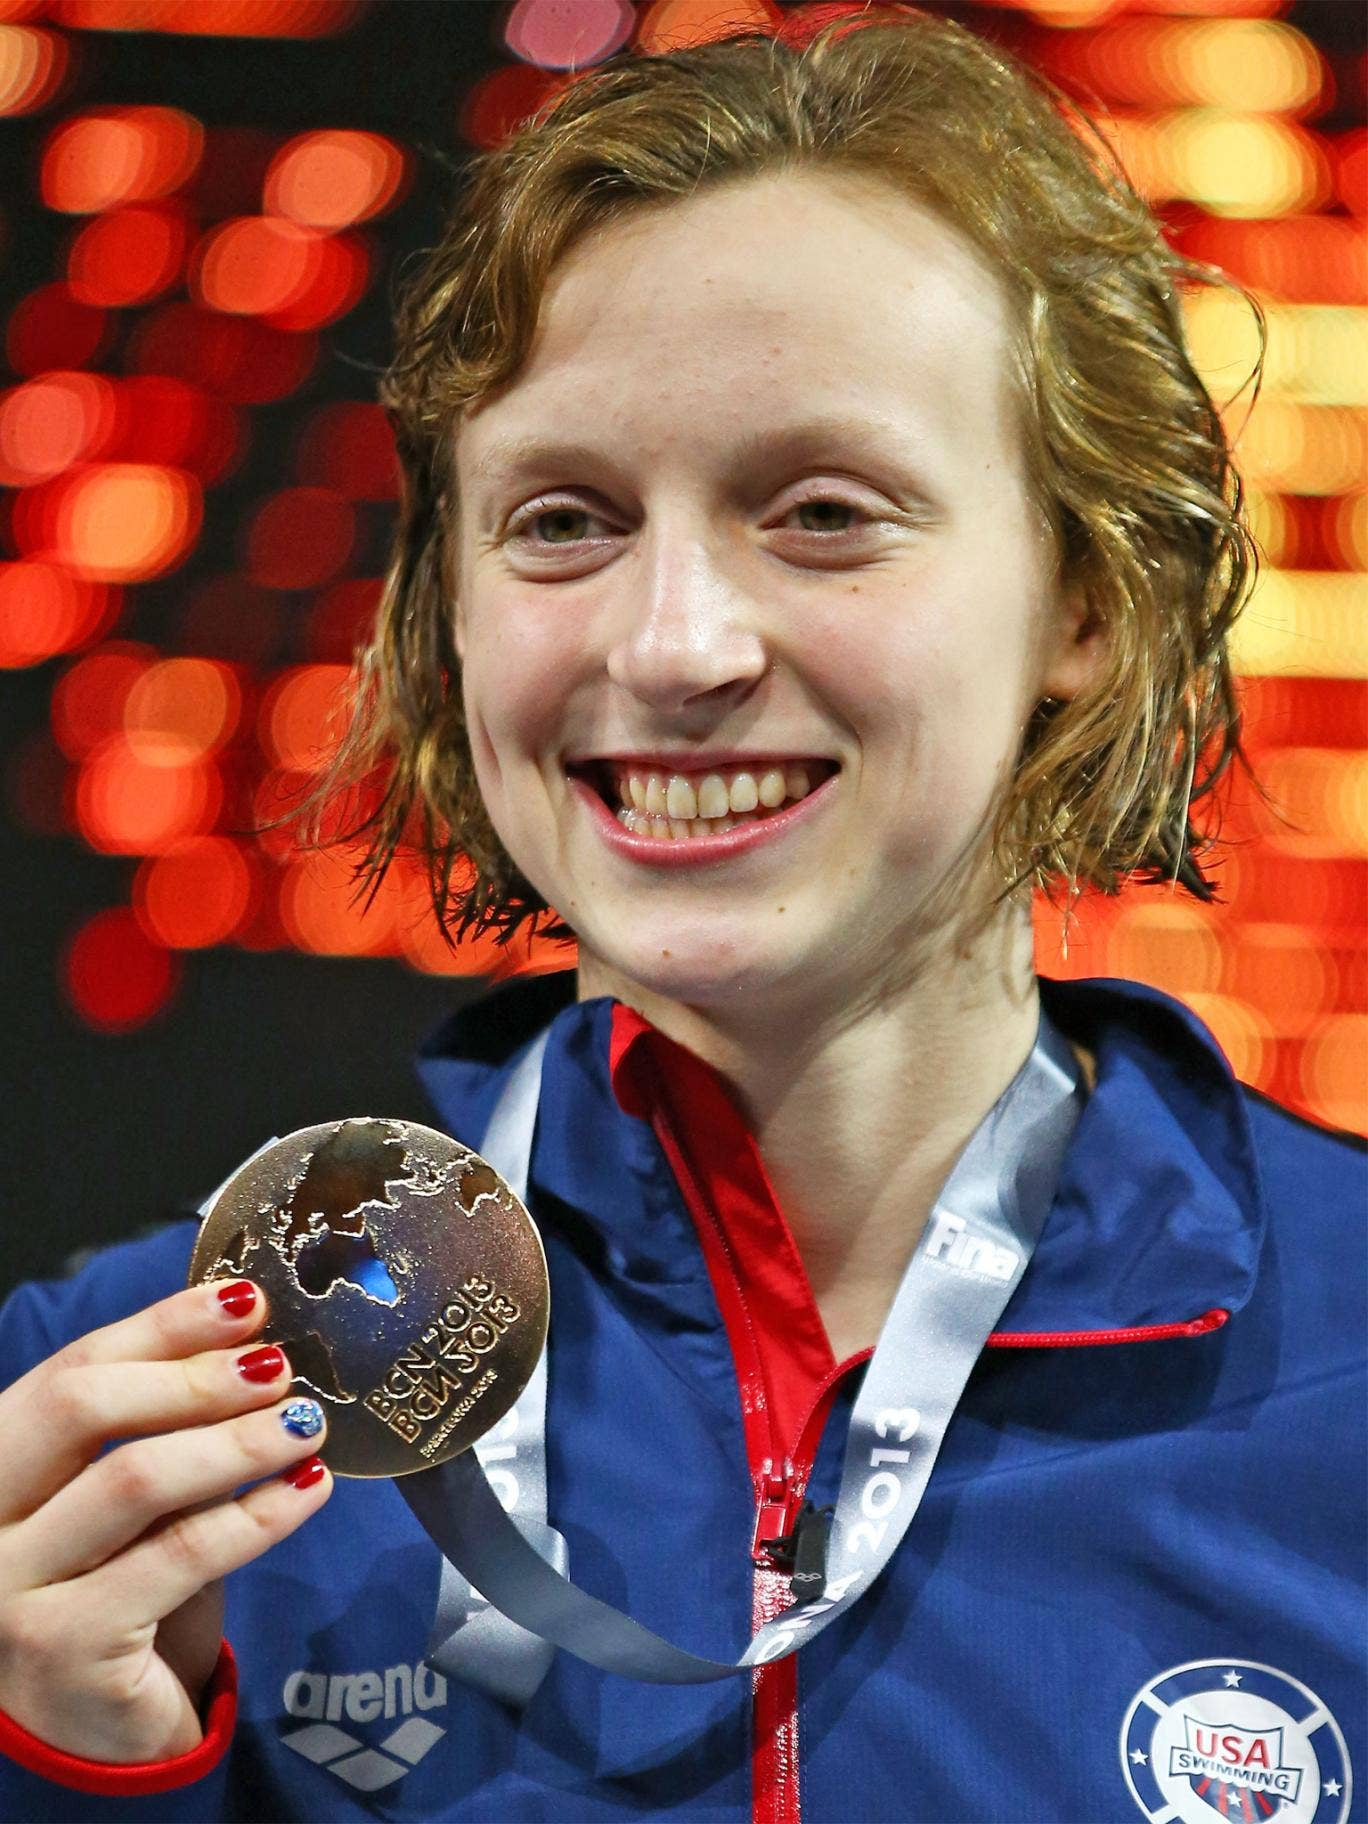 16-year-old Katie Ledecky with her second gold medal of the Championships